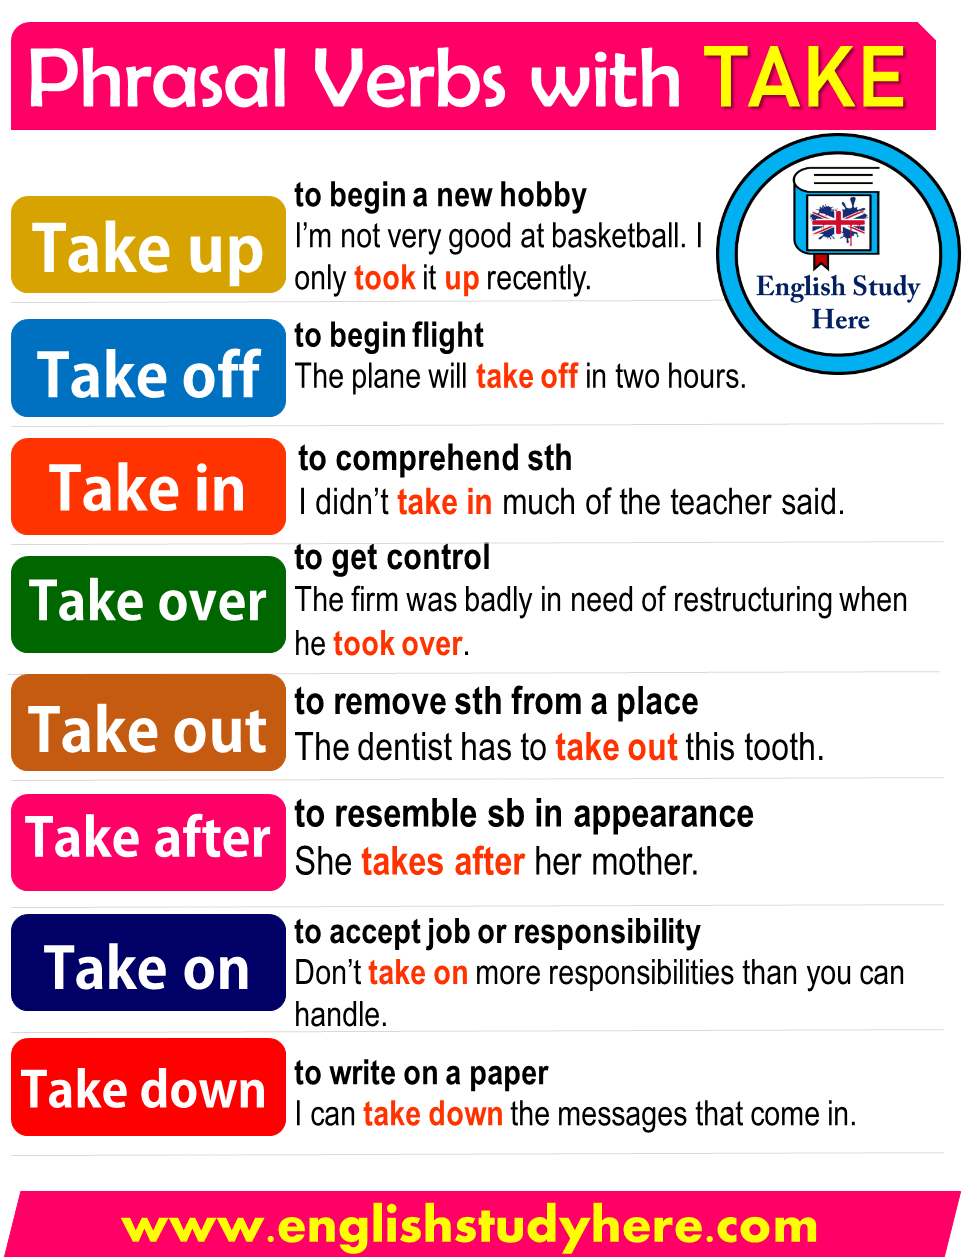 Phrasal Verbs with TAKE